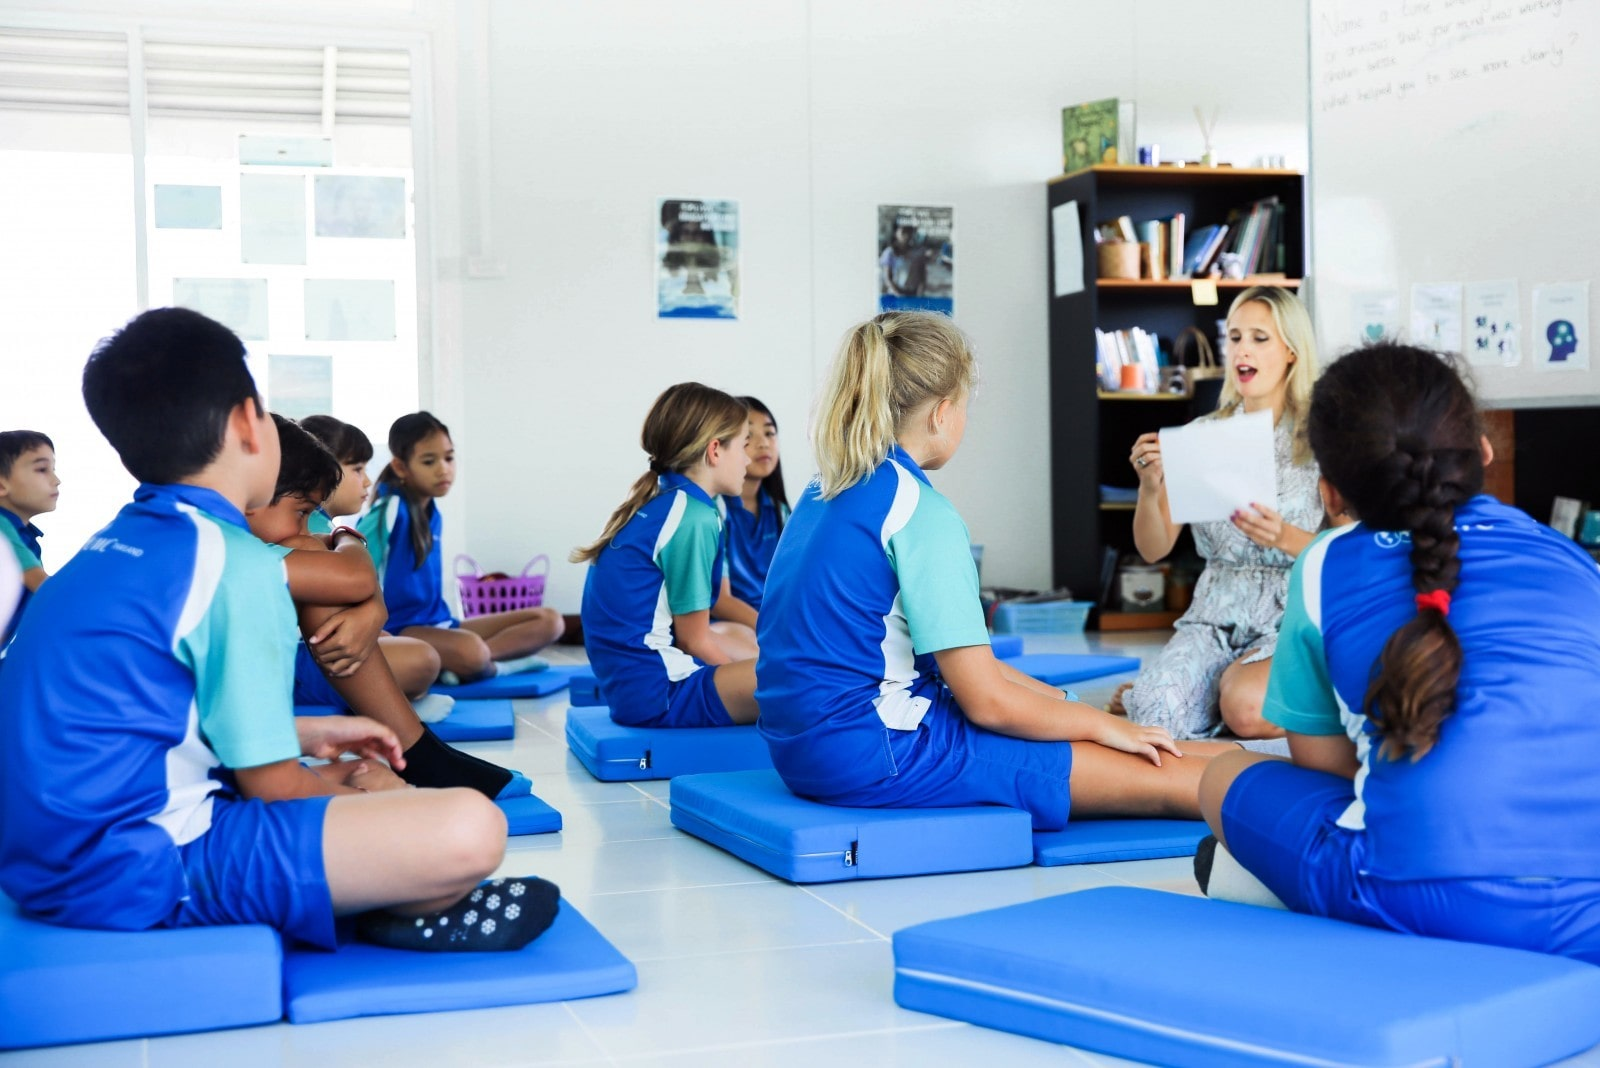 Phuket's first purpose-built school mindfulness centre opens at UWC Thailand   The Thaiger